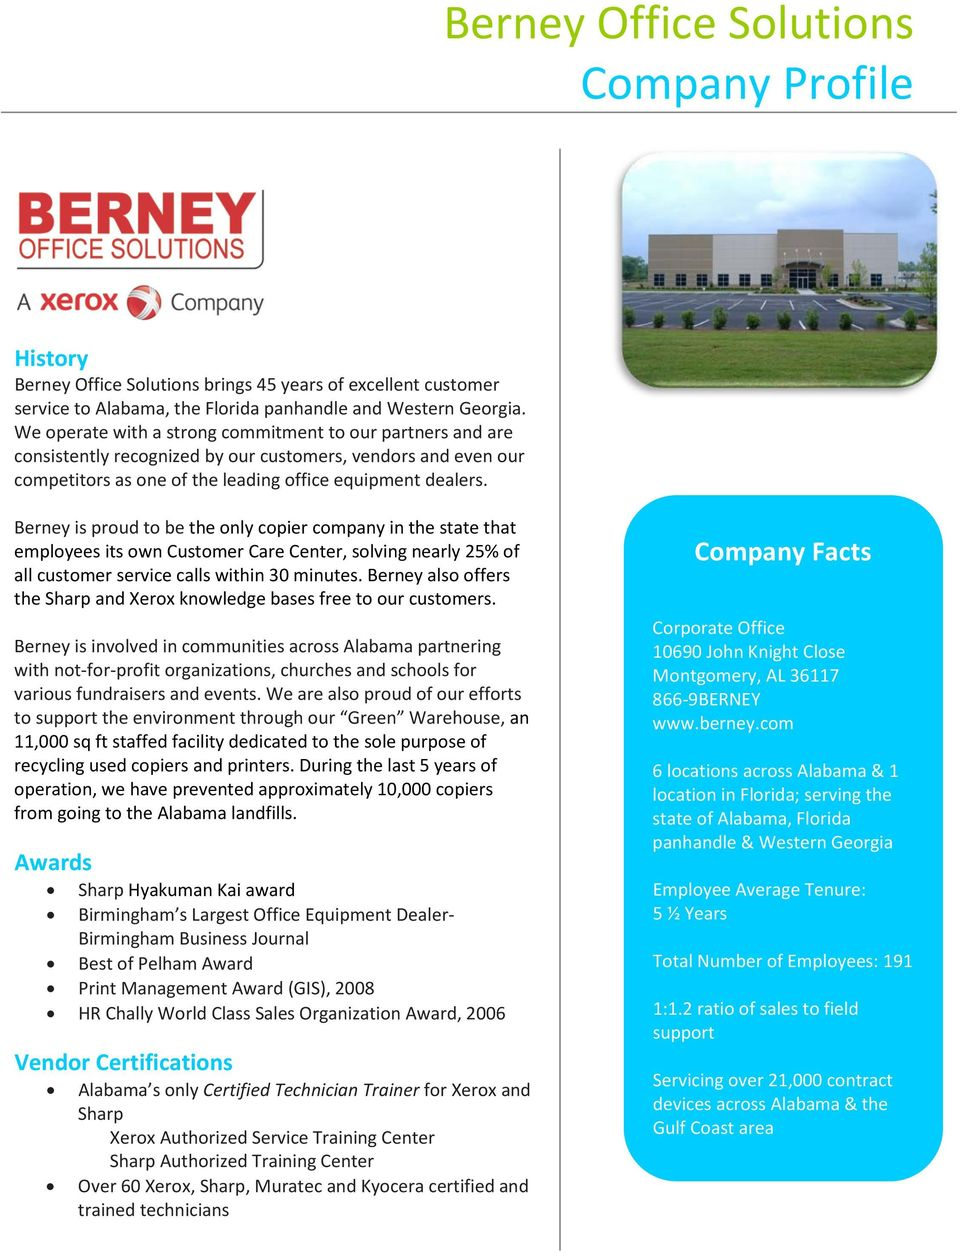 Berney is proud to be the only copier company in the state that employees its own Customer Care Center, solving nearly 25% of all customer service calls within 30 minutes.